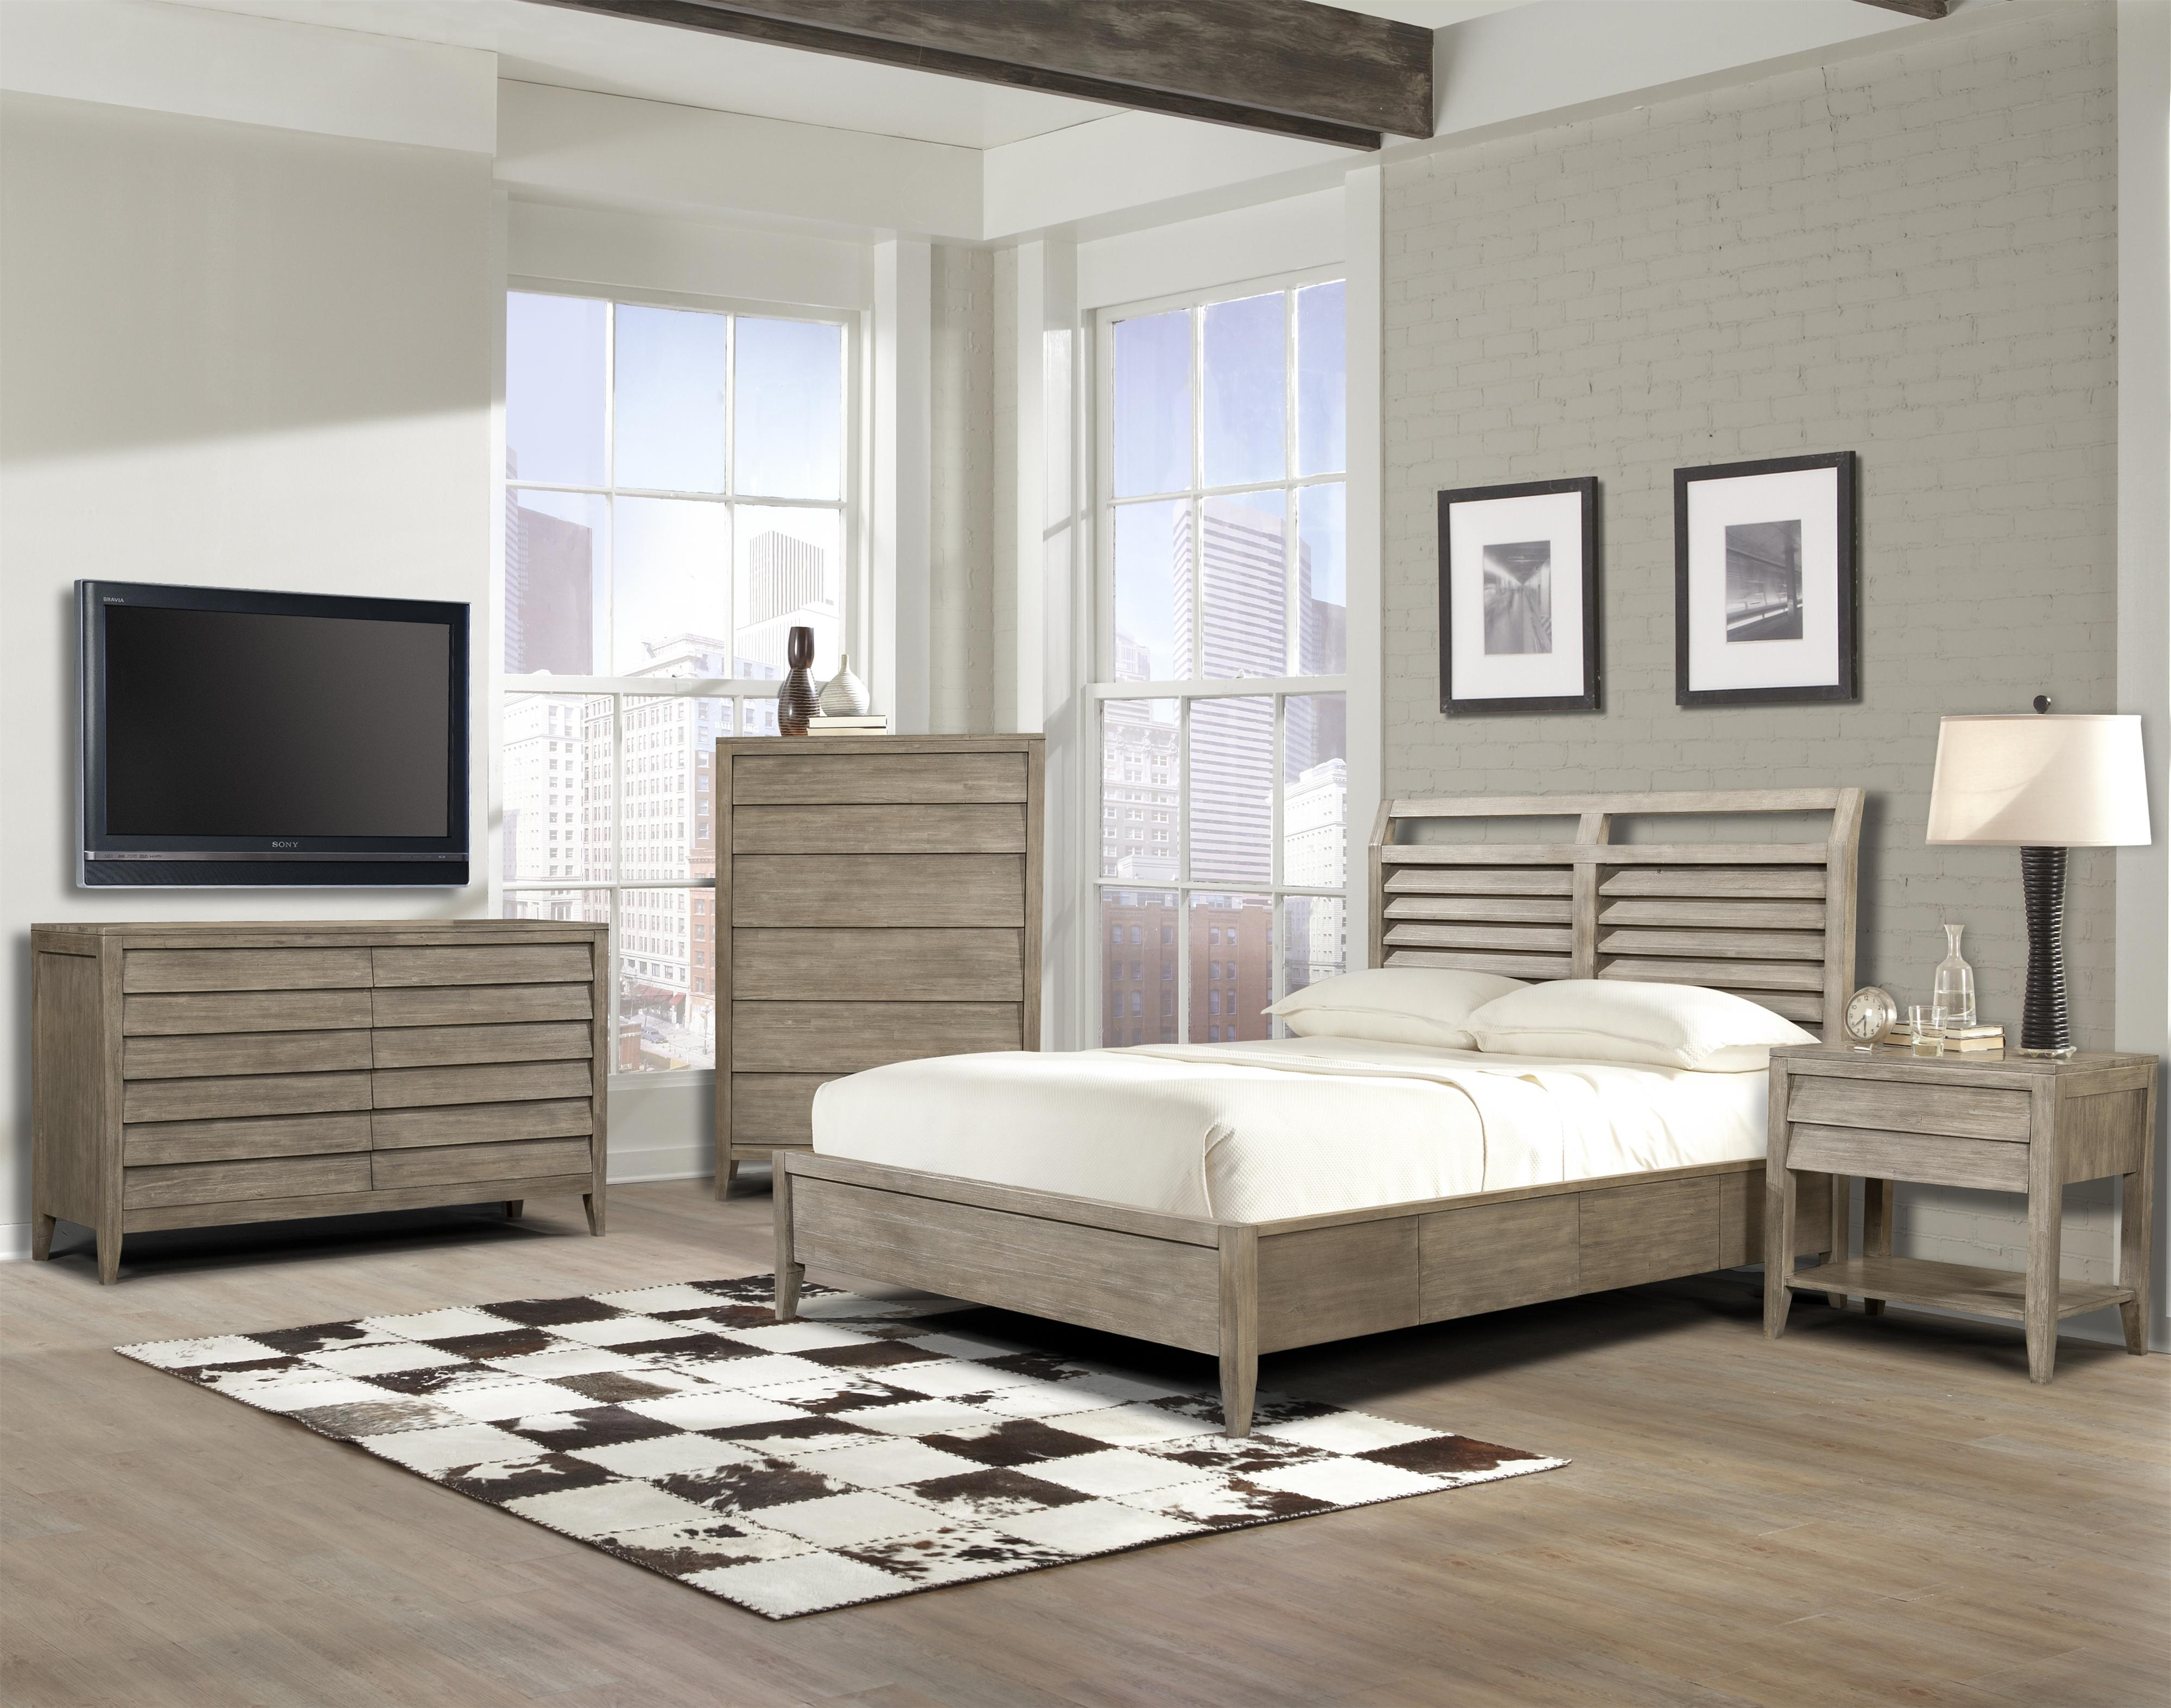 Cresent Fine Furniture Corliss Landing Cal King Bedroom Group - Item Number: 5600 CK Bedroom Group 3